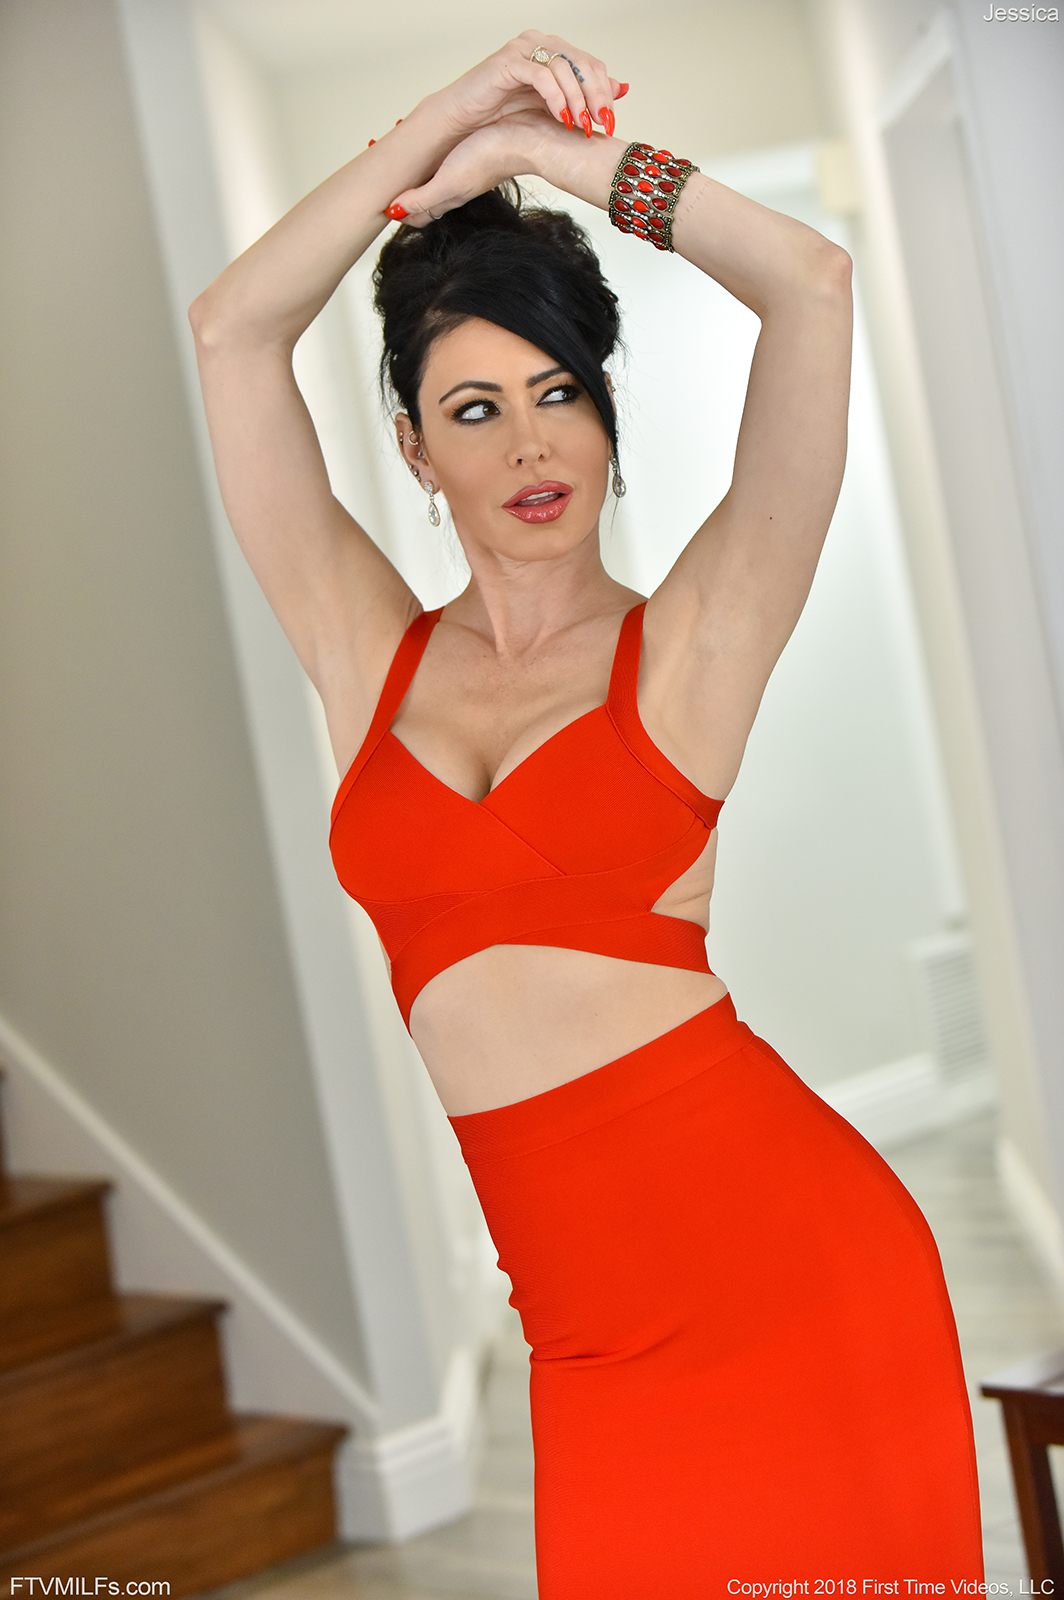 Jessica Big Titted Fit Milf in Red Dress for FTV Milfs